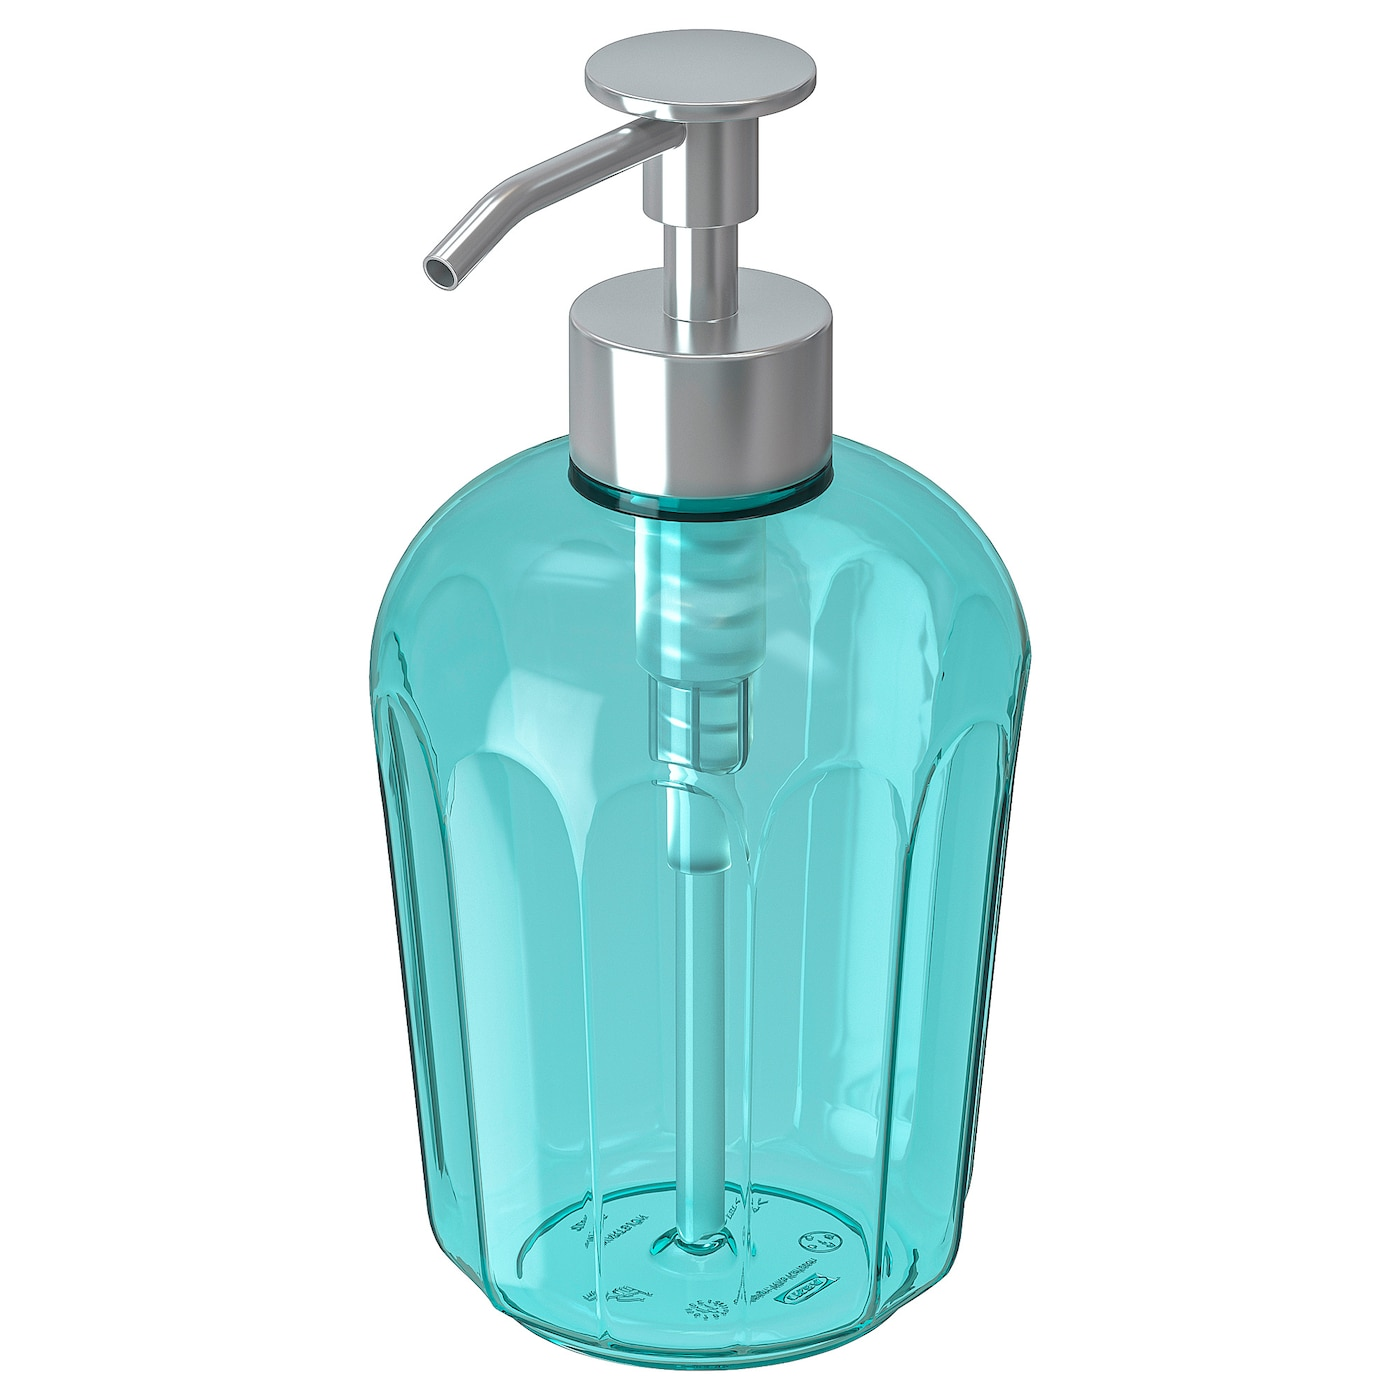 Ikea SvartsjÖn Soap Dispenser Easy To Fill With Your Favourite